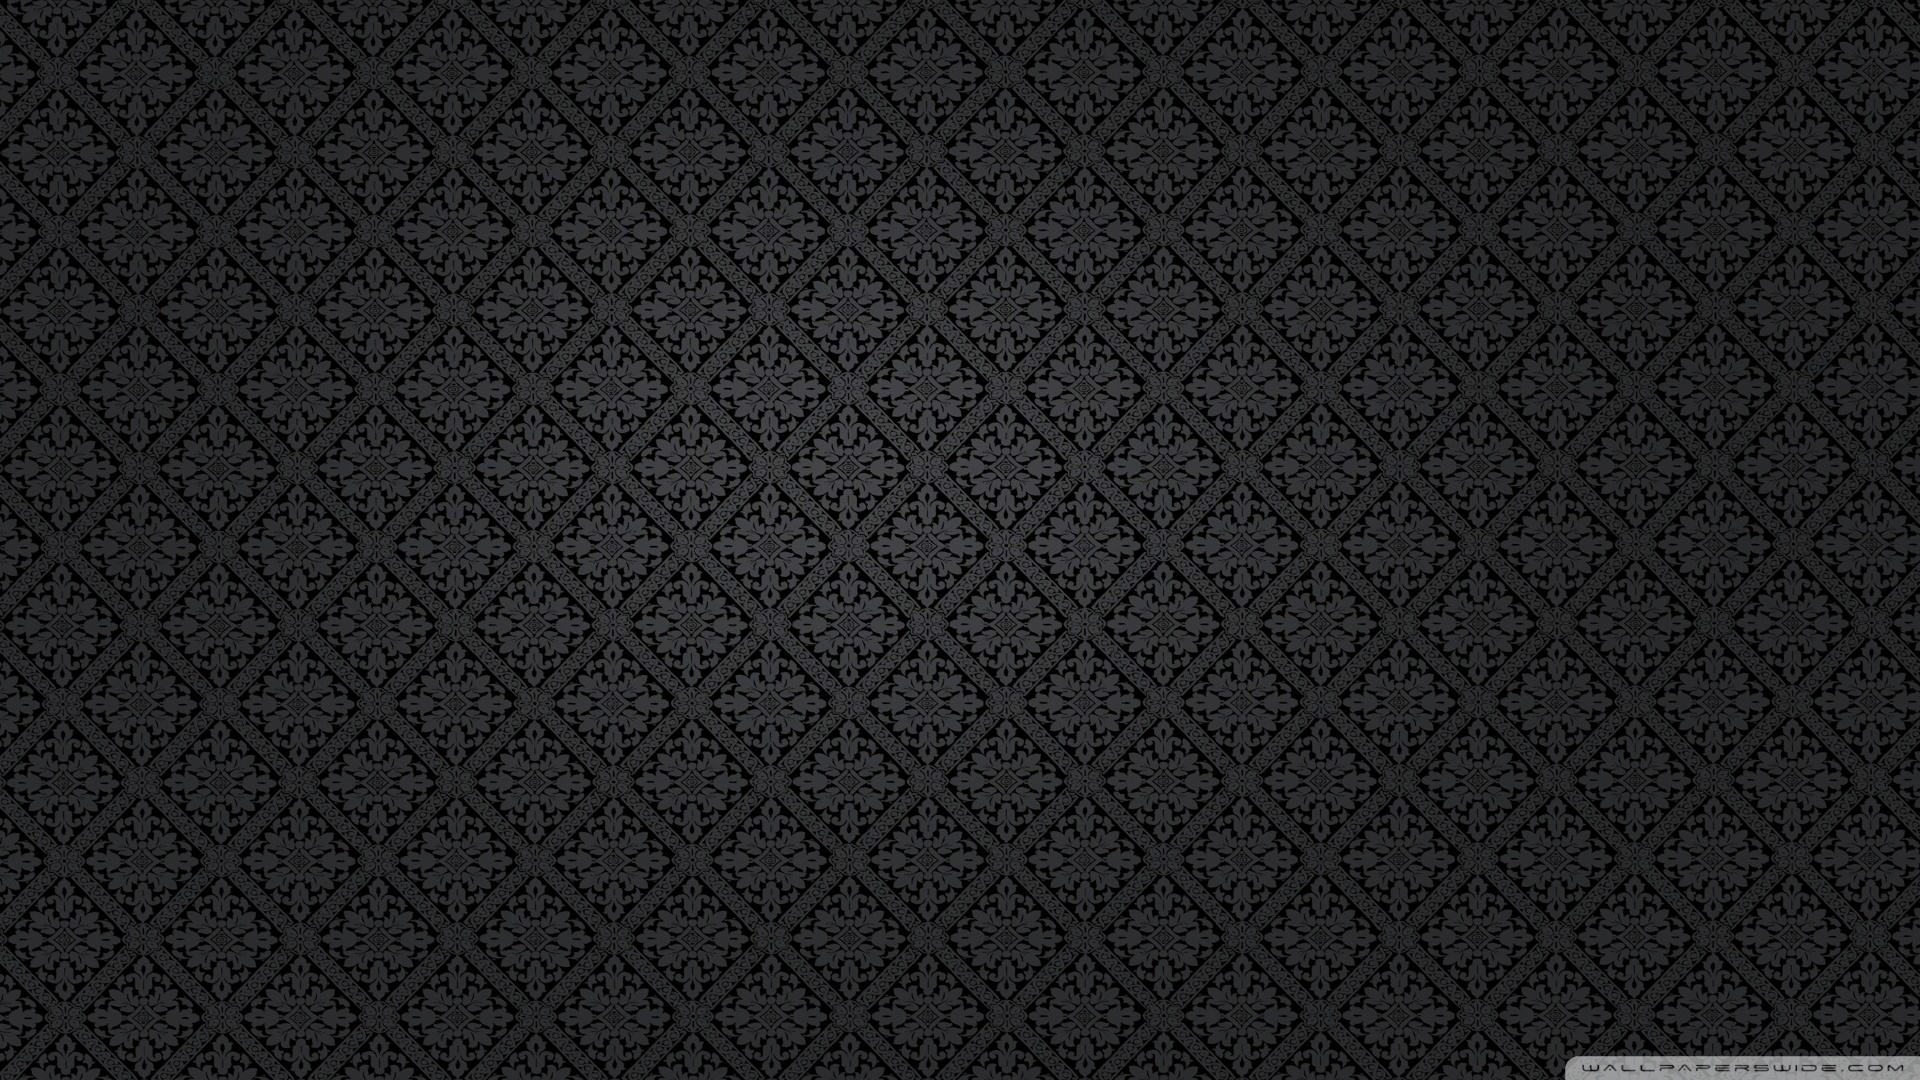 Black And White Pattern wallpaper   980152 1920x1080